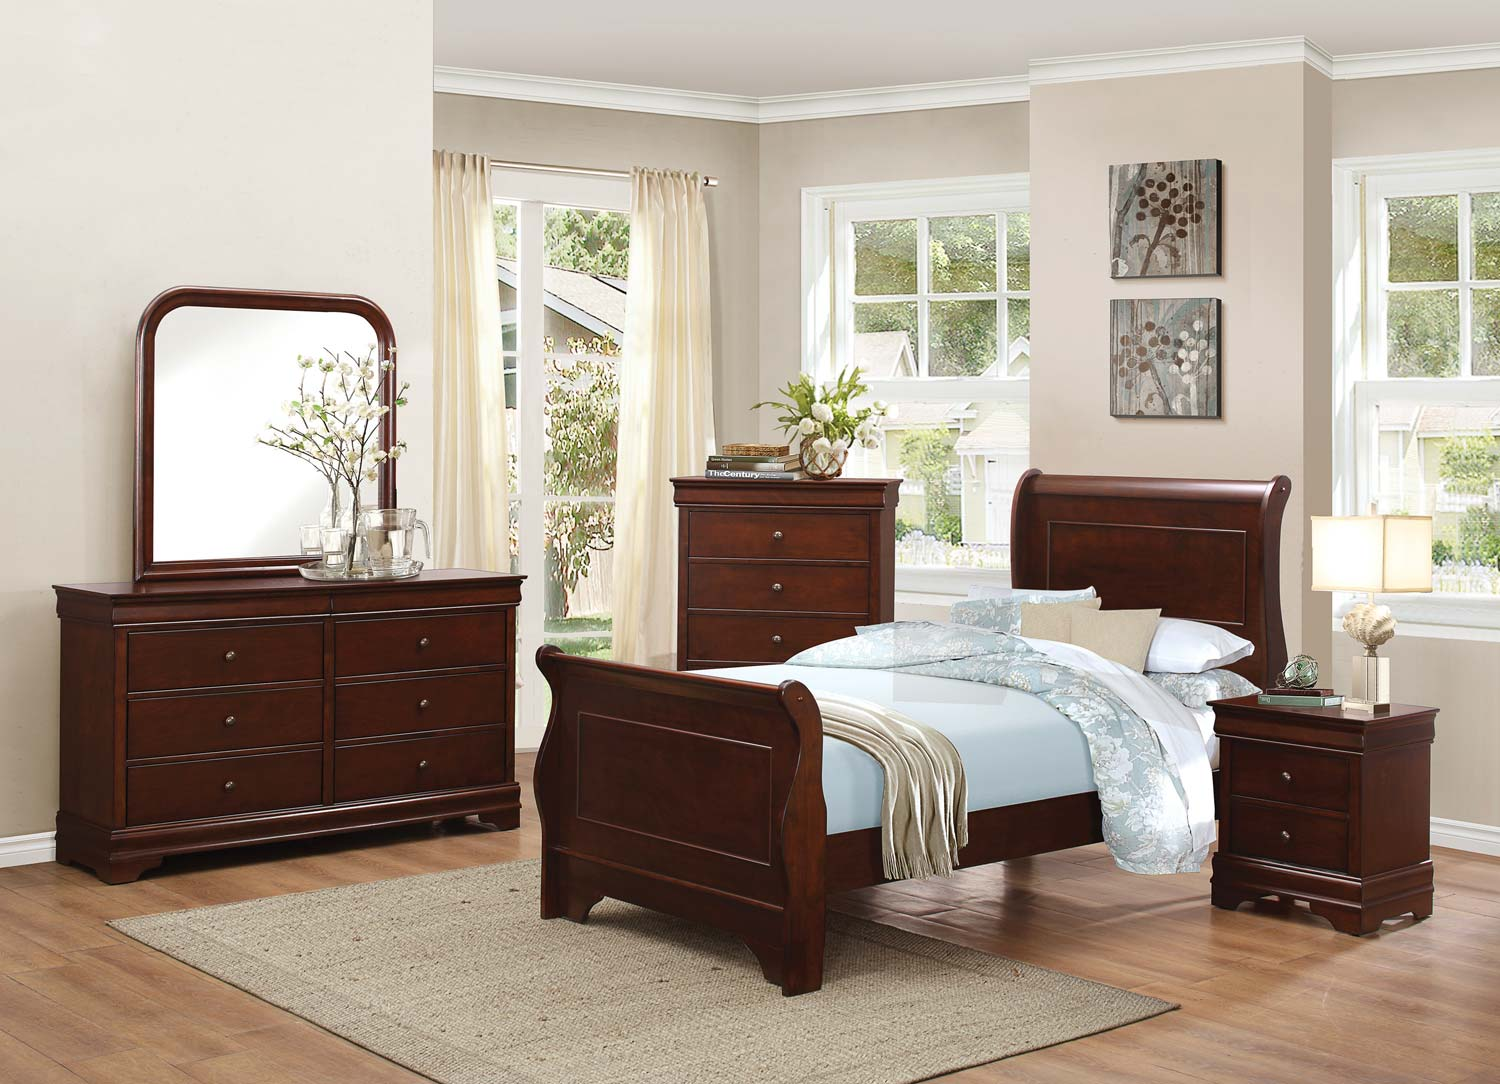 Homelegance Abbeville Sleigh Bedroom Set - Brown Cherry